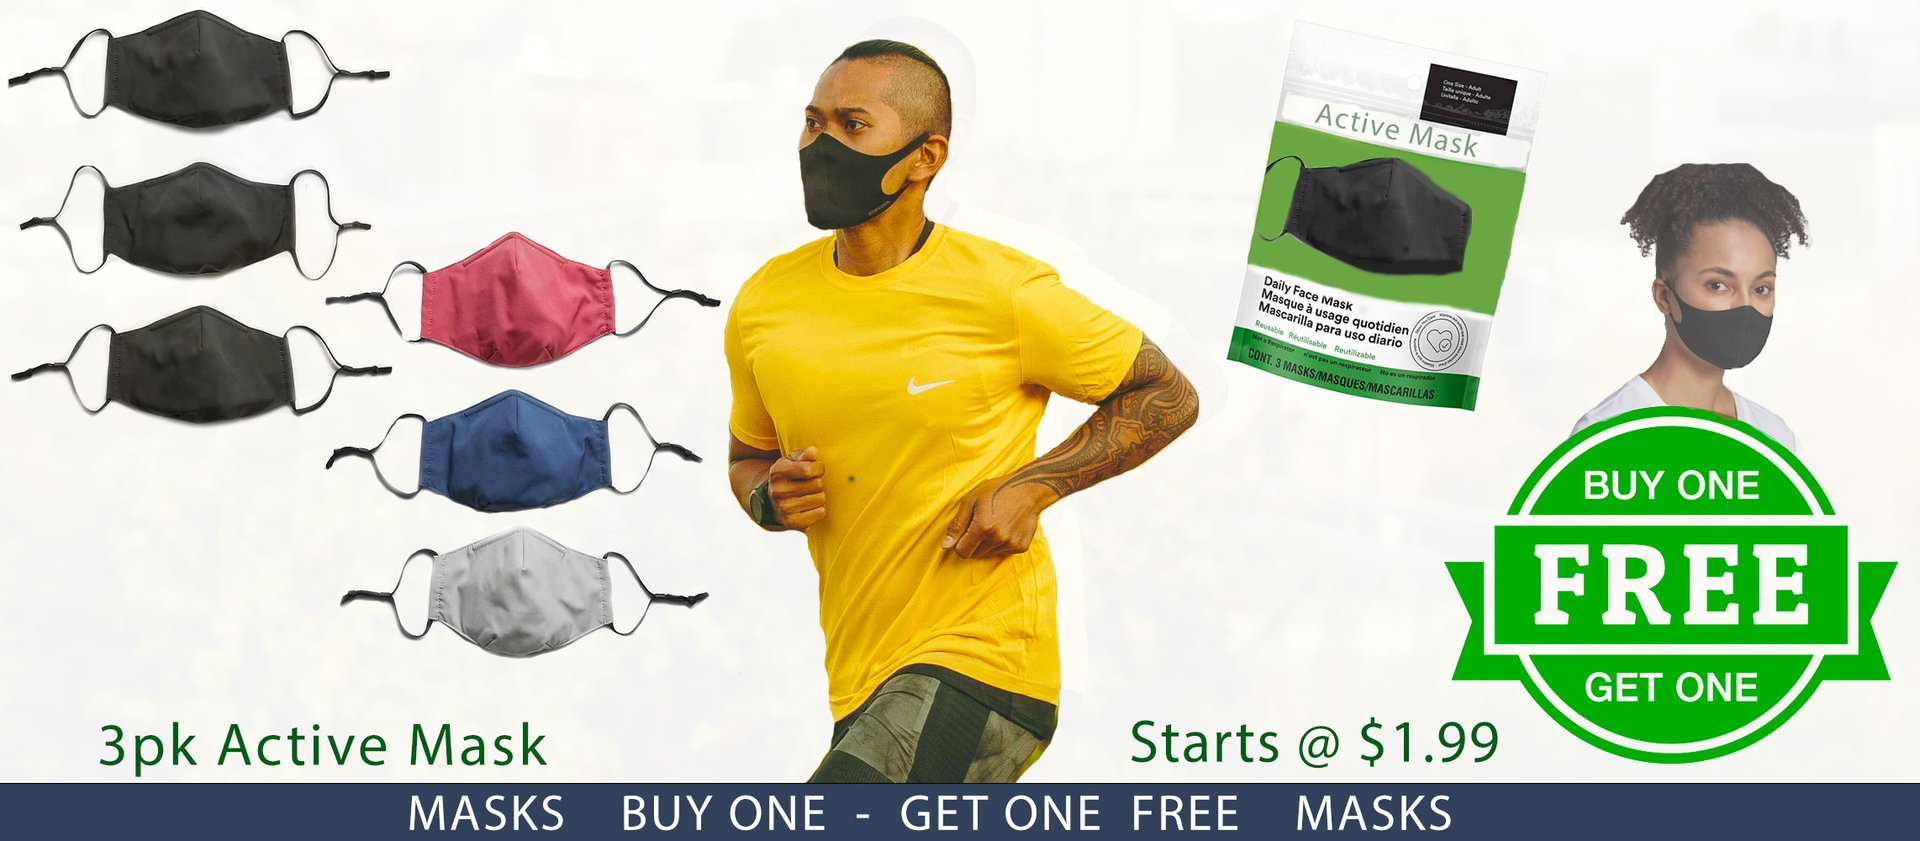 Syringe and Needles starting at $3.99